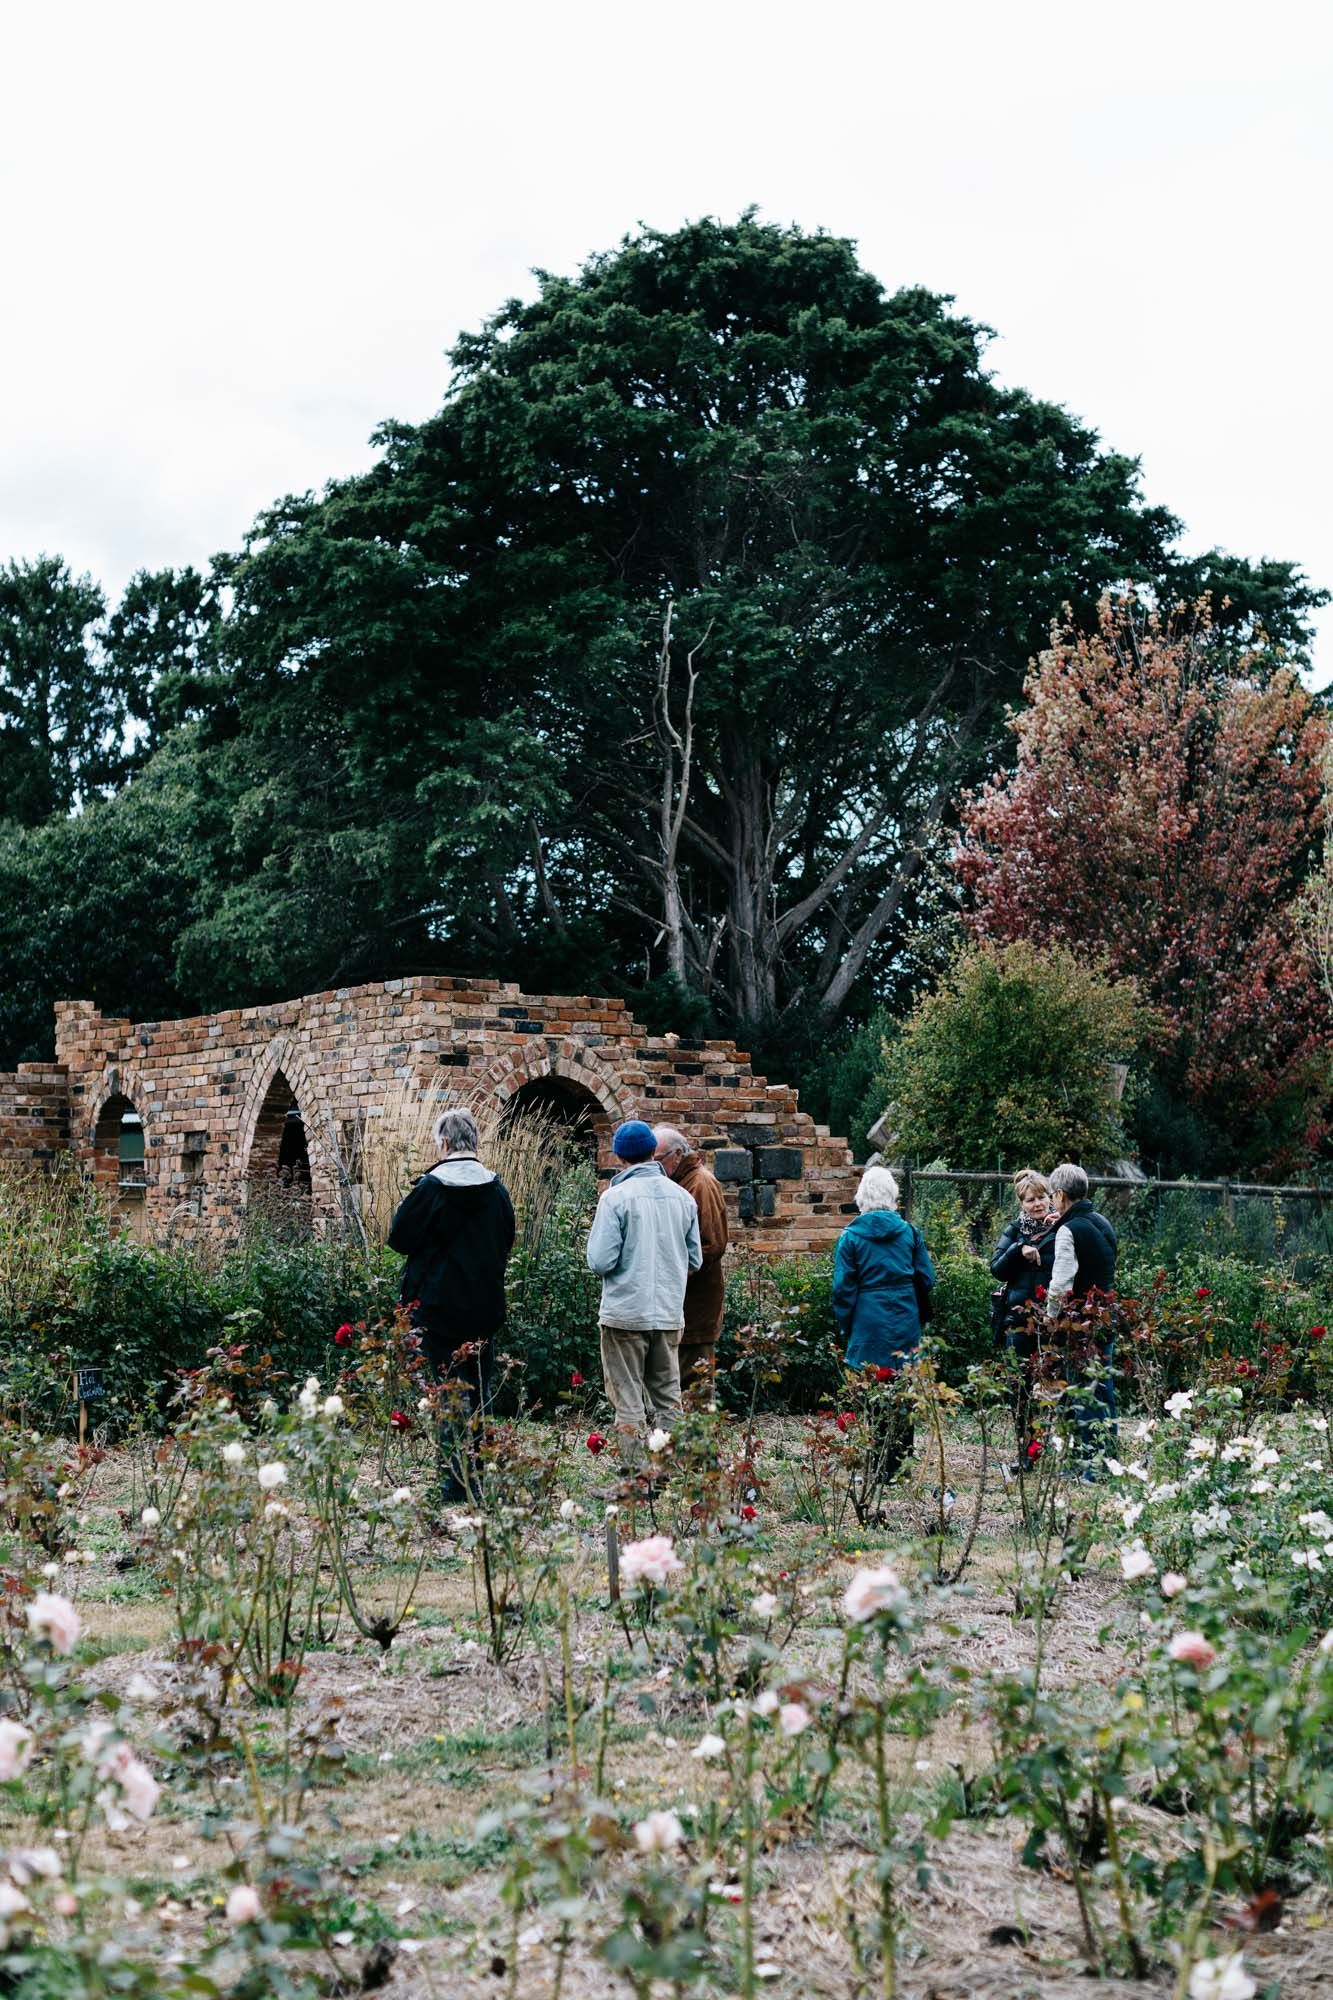 Rose paddock at Acre of Roses, Trentham - a sustainable flower farm and luxury country accommodation. Photography by Marnie Hawson, Melbourne ethical photographer.